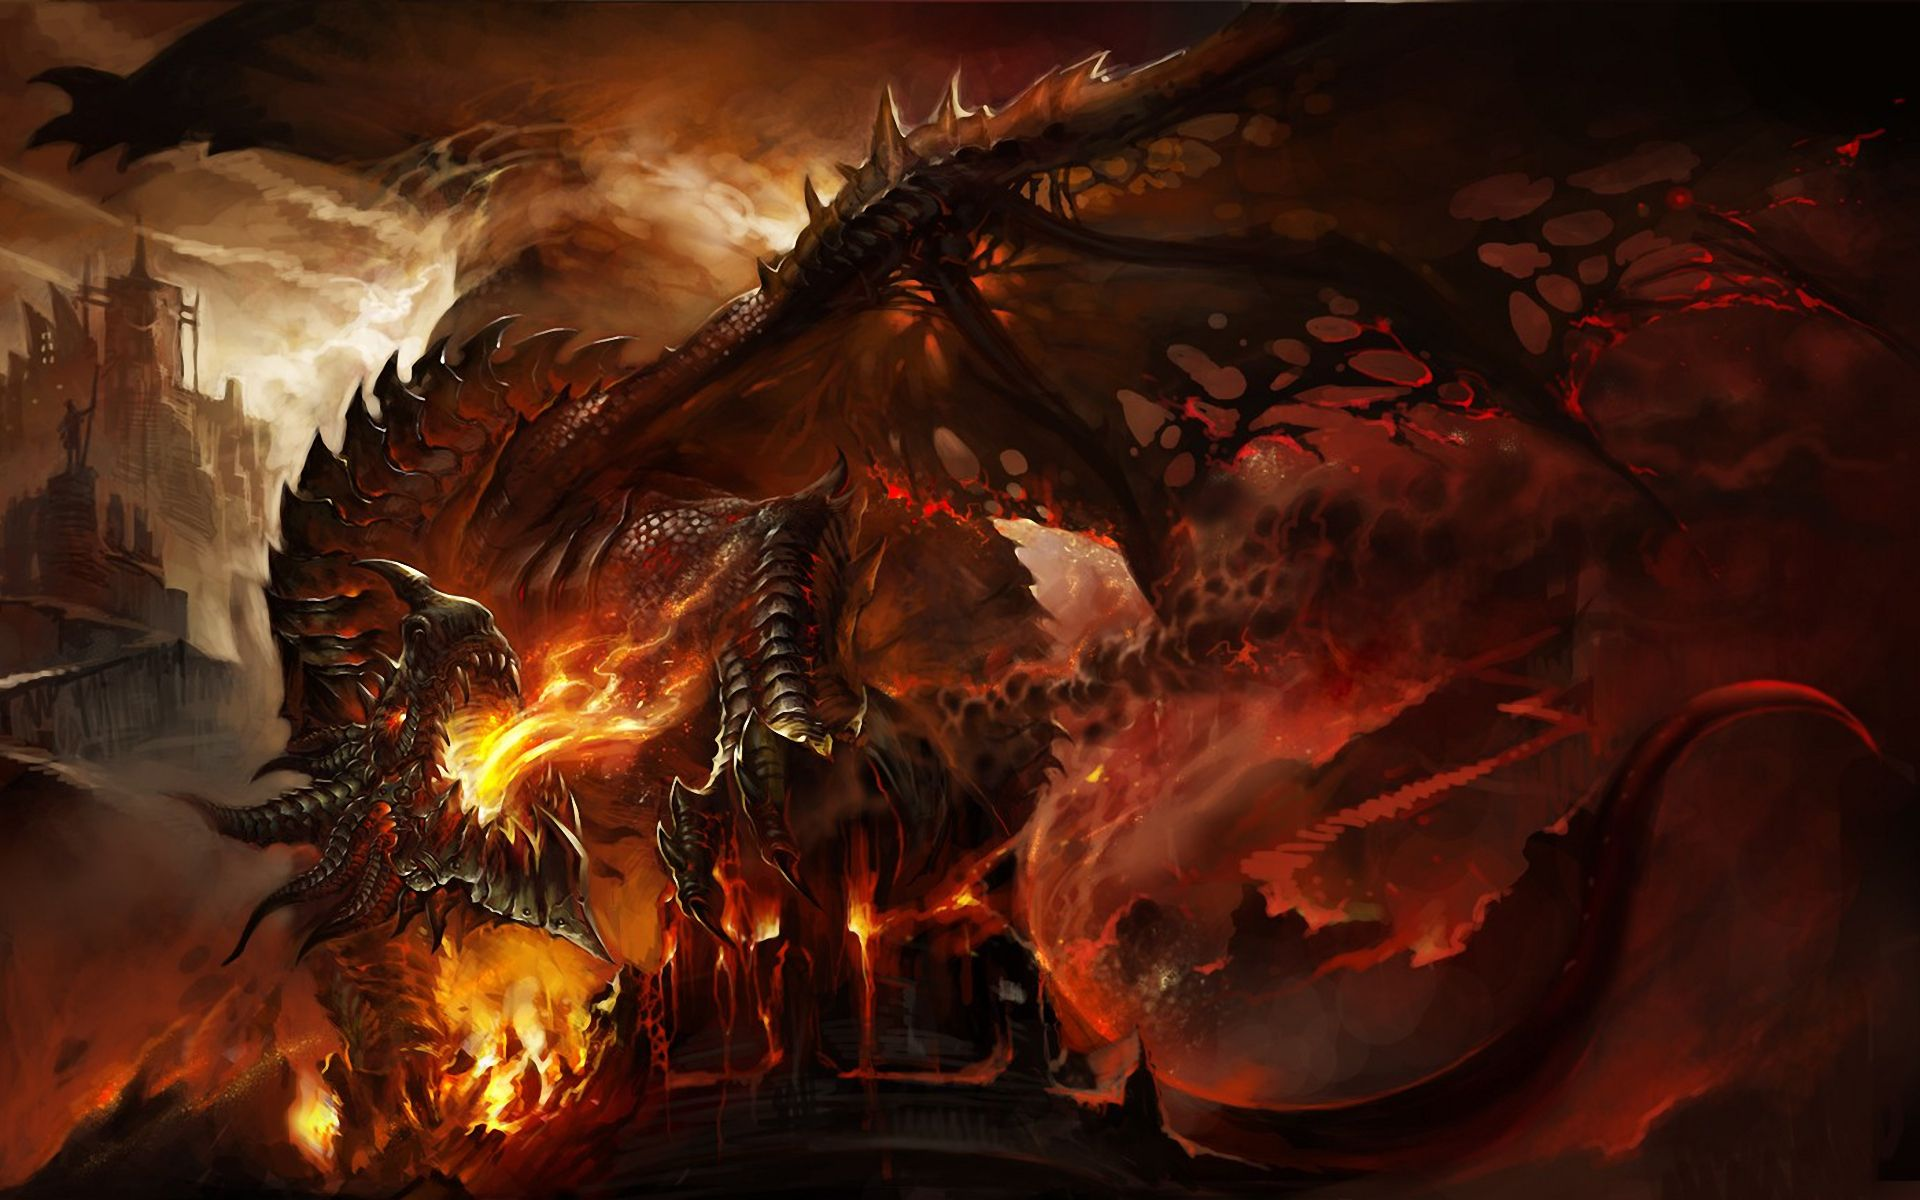 Epic dragon wallpapers hd viewing gallery fire dragon wallpaper 1080p hd wallpapers free - Dragon wallpaper 3d ...